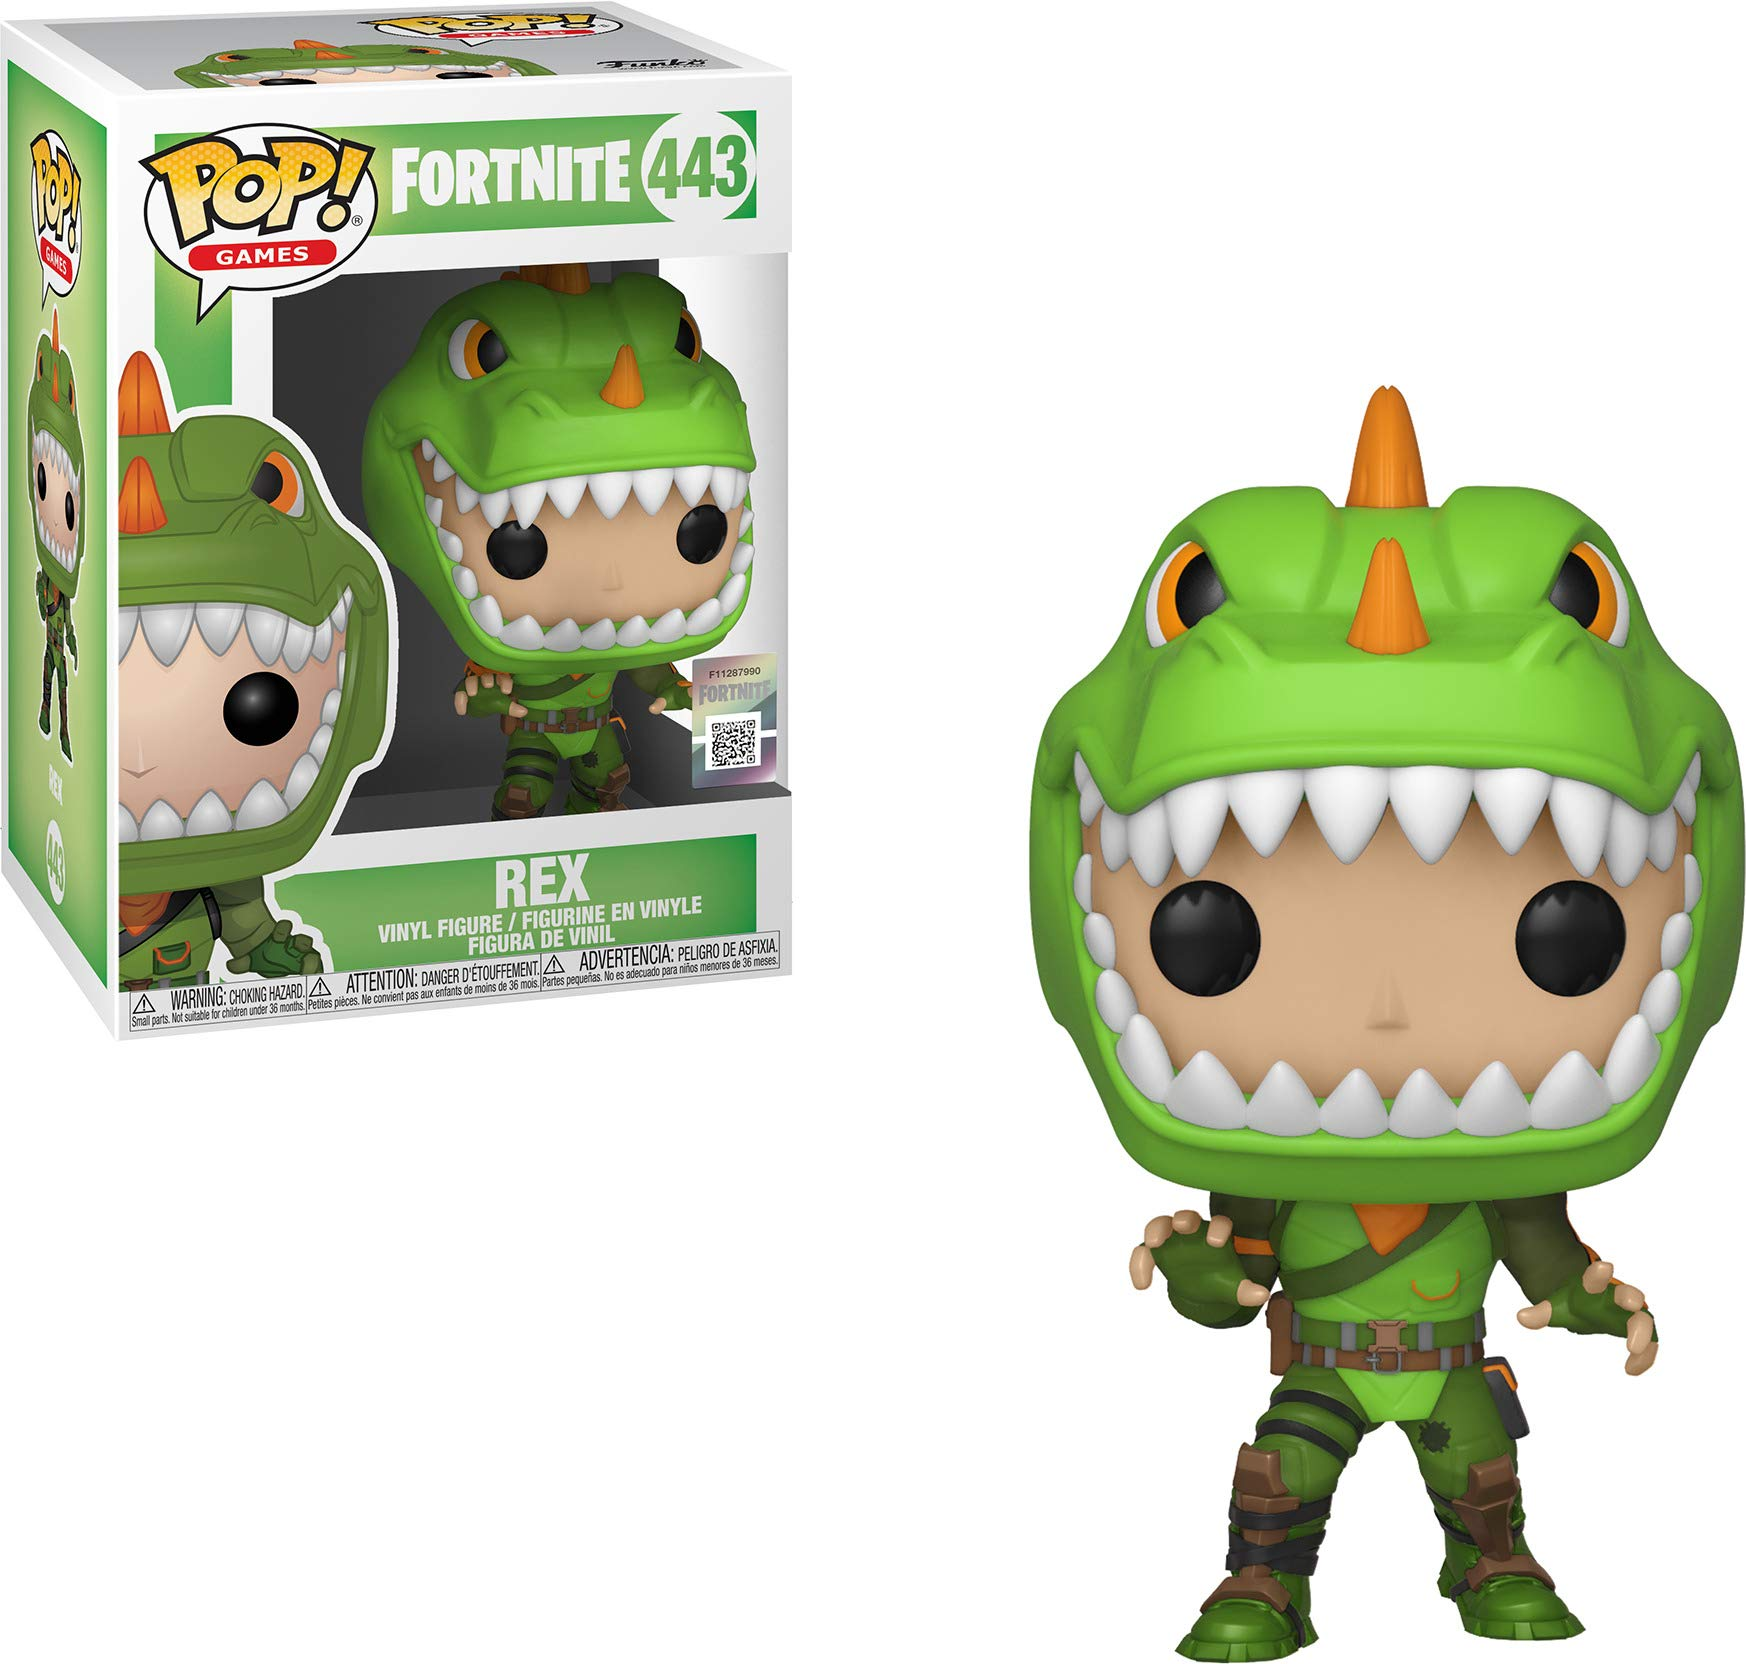 Funko pop fortnite rex